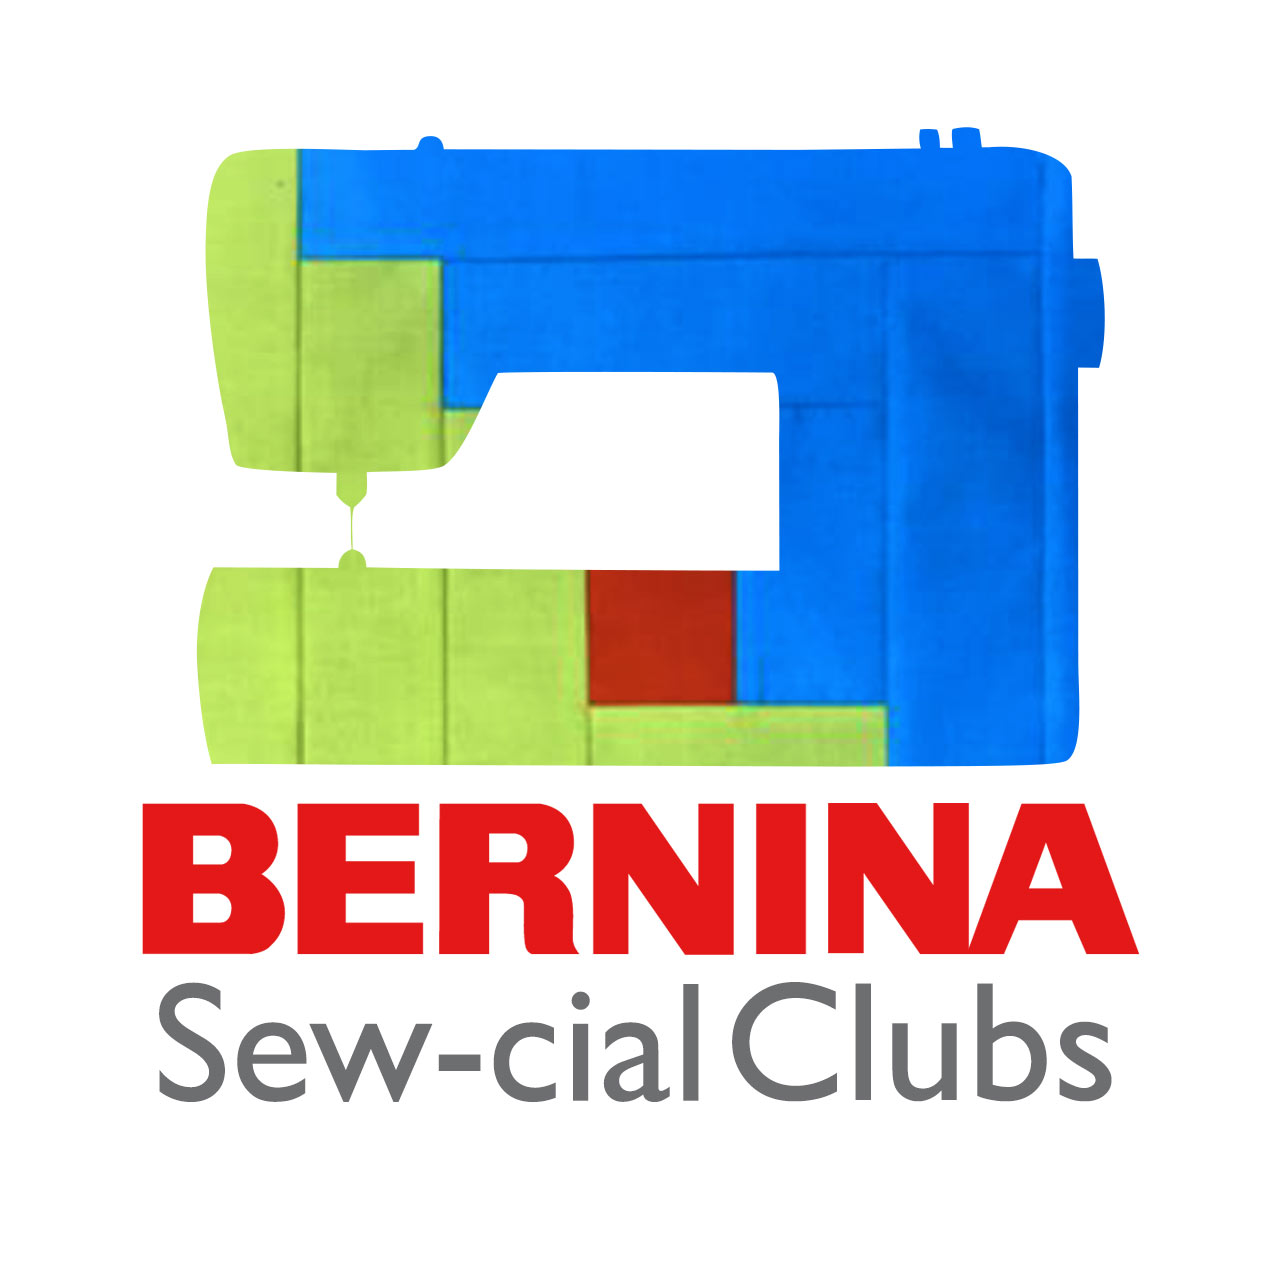 Upcoming Bernina Sew-cial Club Topics